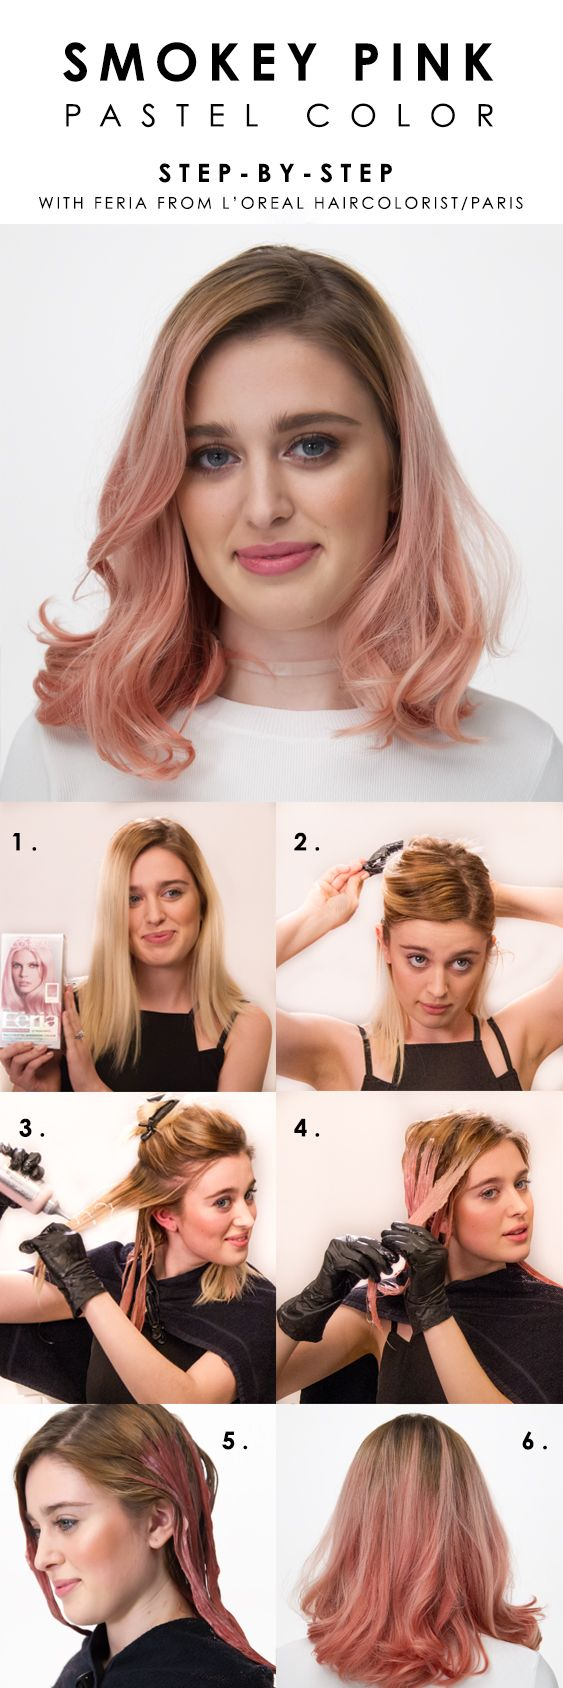 The look at home using l oreal paris feria smokey pastels in p2 smokey - How To Color Hair Pastel Pink With L Oreal Paris Feria Smokey Pastels Watch